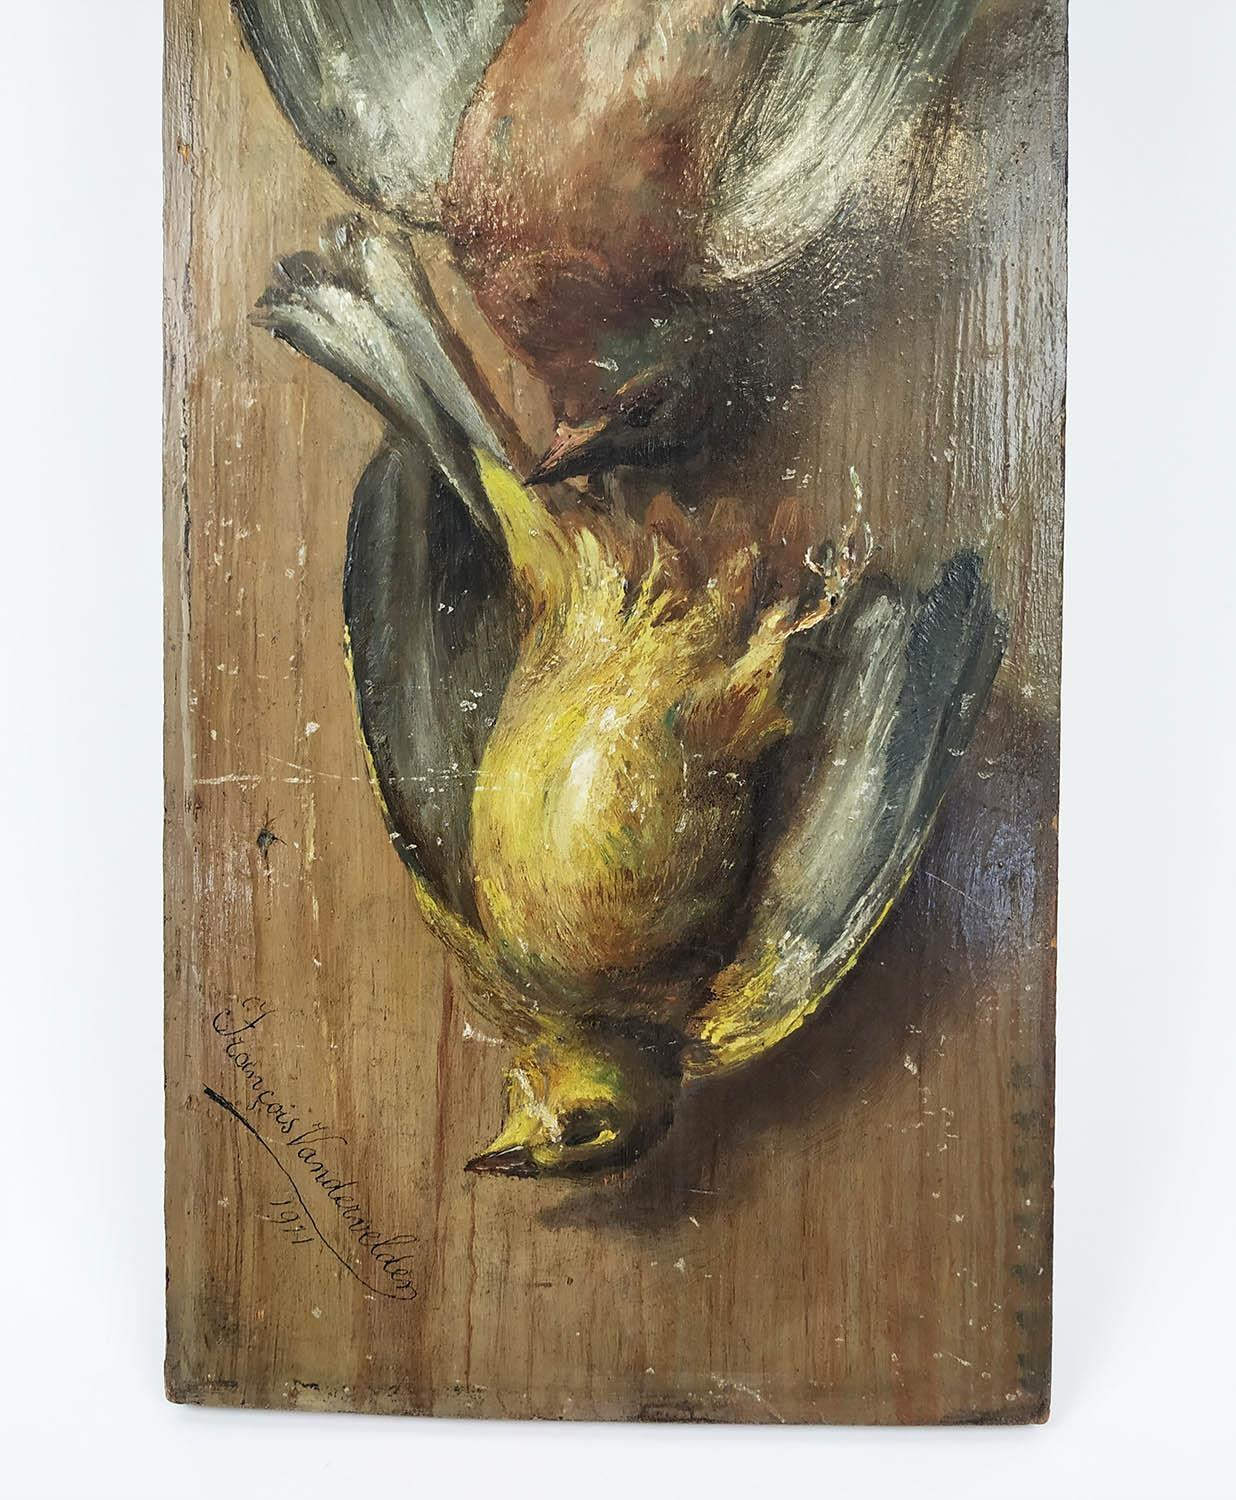 DUTCH/FLEMISH SCHOOL TROMPE L'OEIL, oil on panel, study of hanging birds, signed and dated - Image 2 of 4